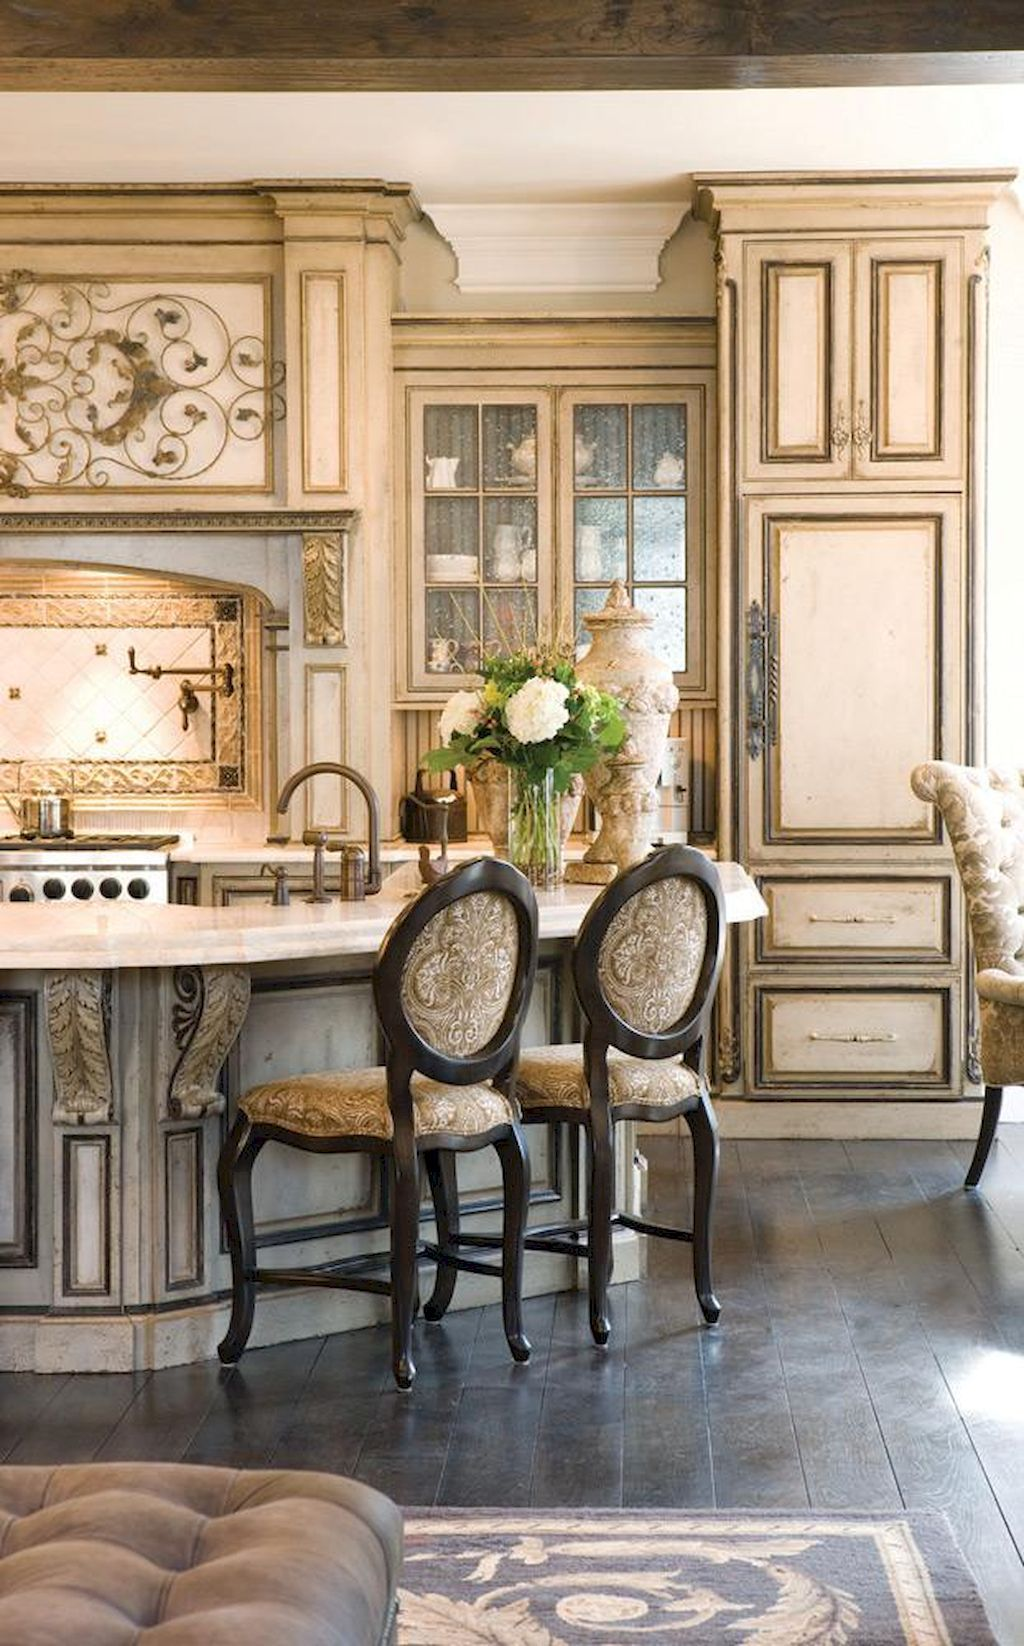 cool 45 french country kitchen design decor ideas https roomodeling com 45 french with on kitchen remodel french country id=34249